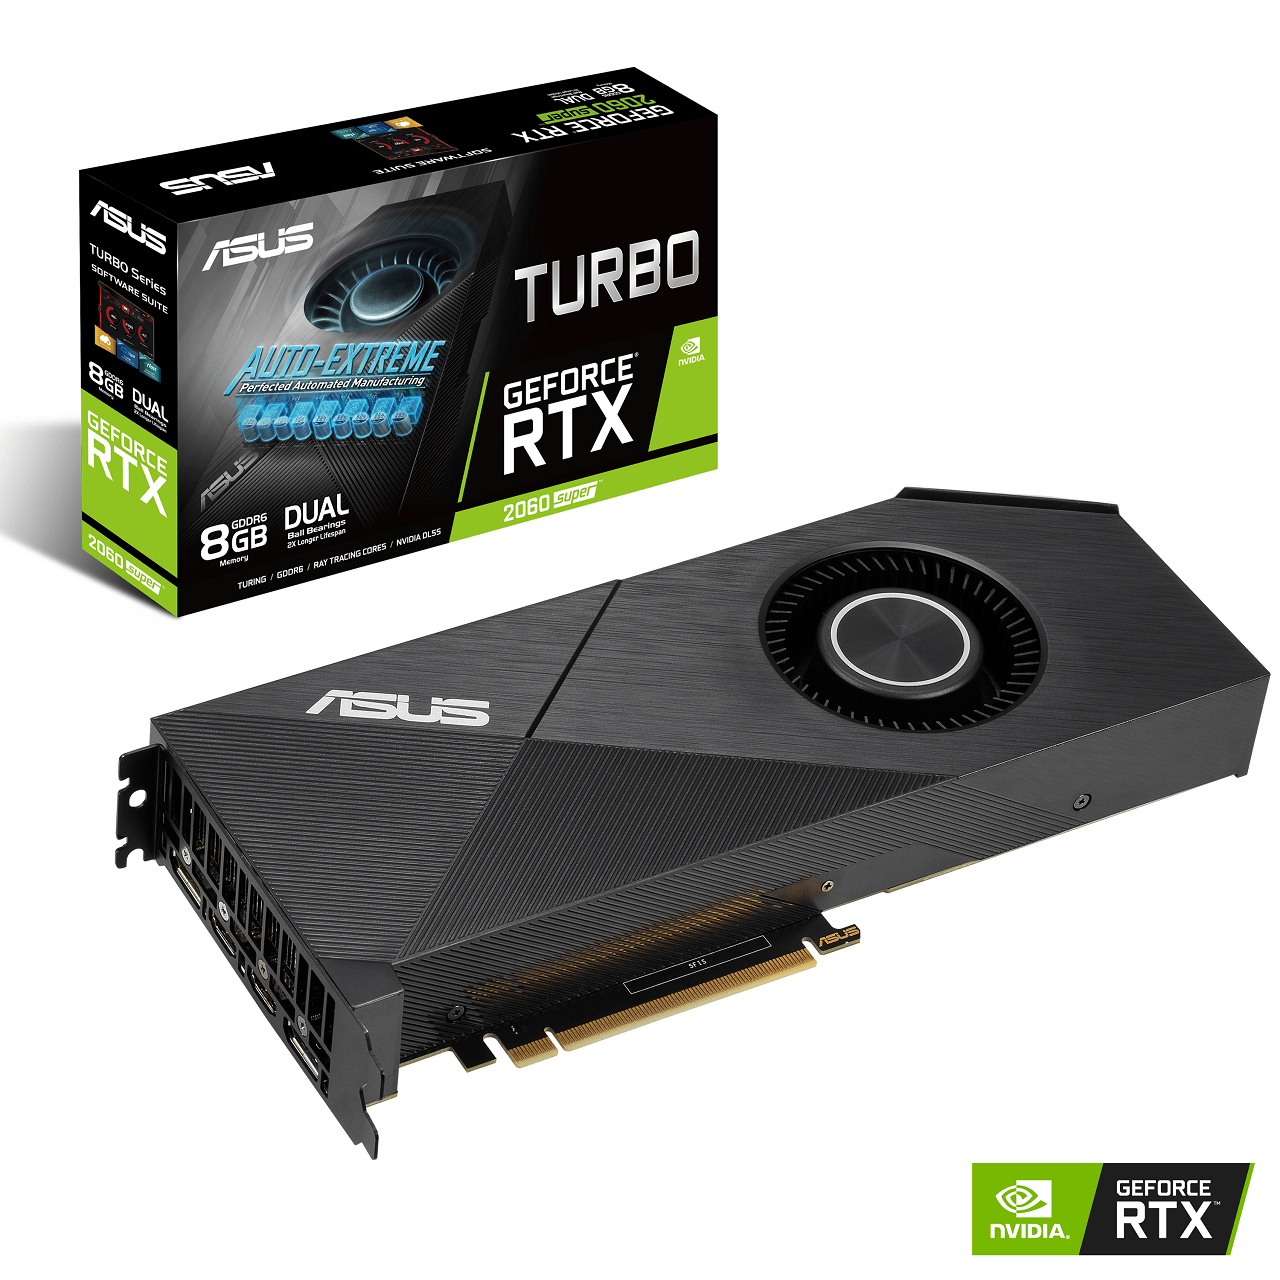 Nvidia Asus RTX 2080 SUPER TURBO